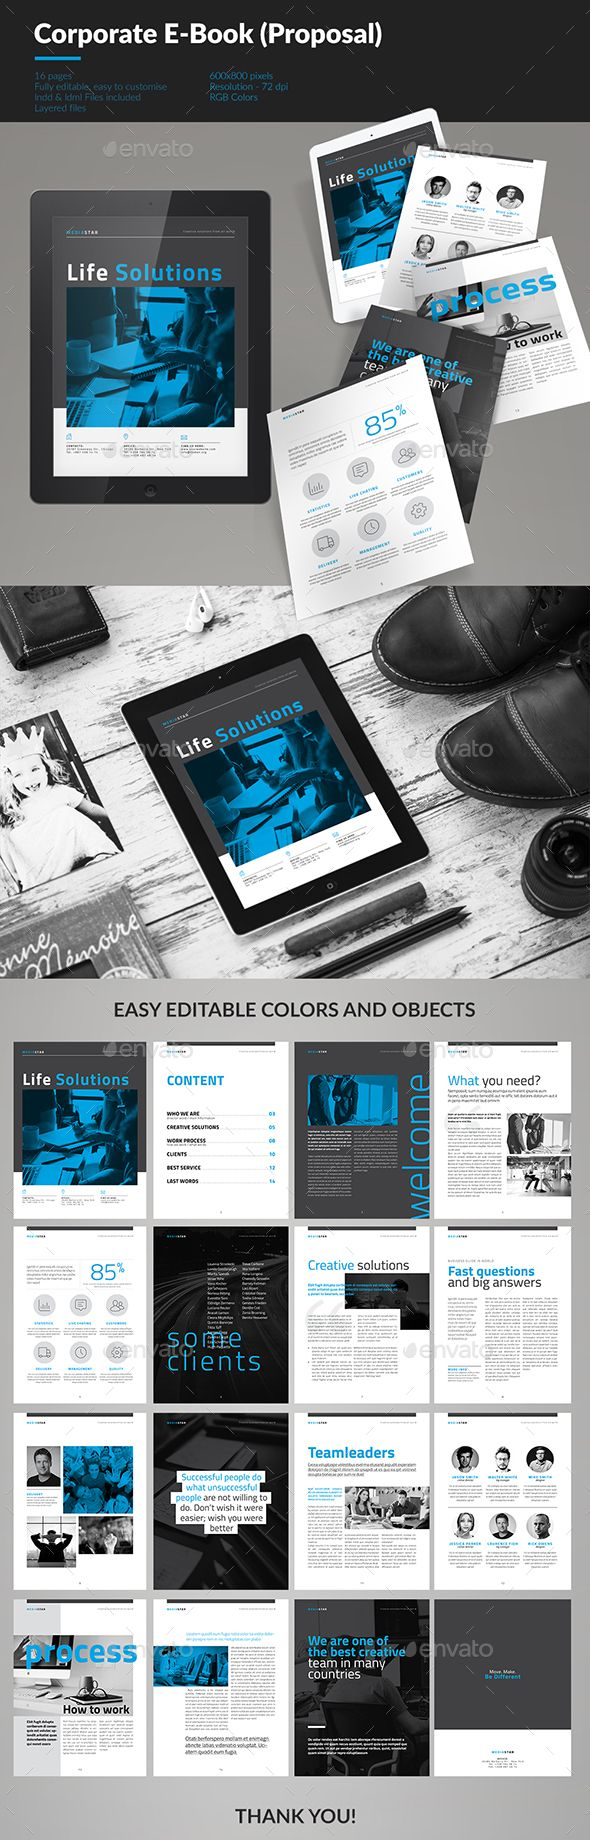 30 best interactive pdf portfoliopresentation images on pinterest corporate e book template vol5 fandeluxe Choice Image